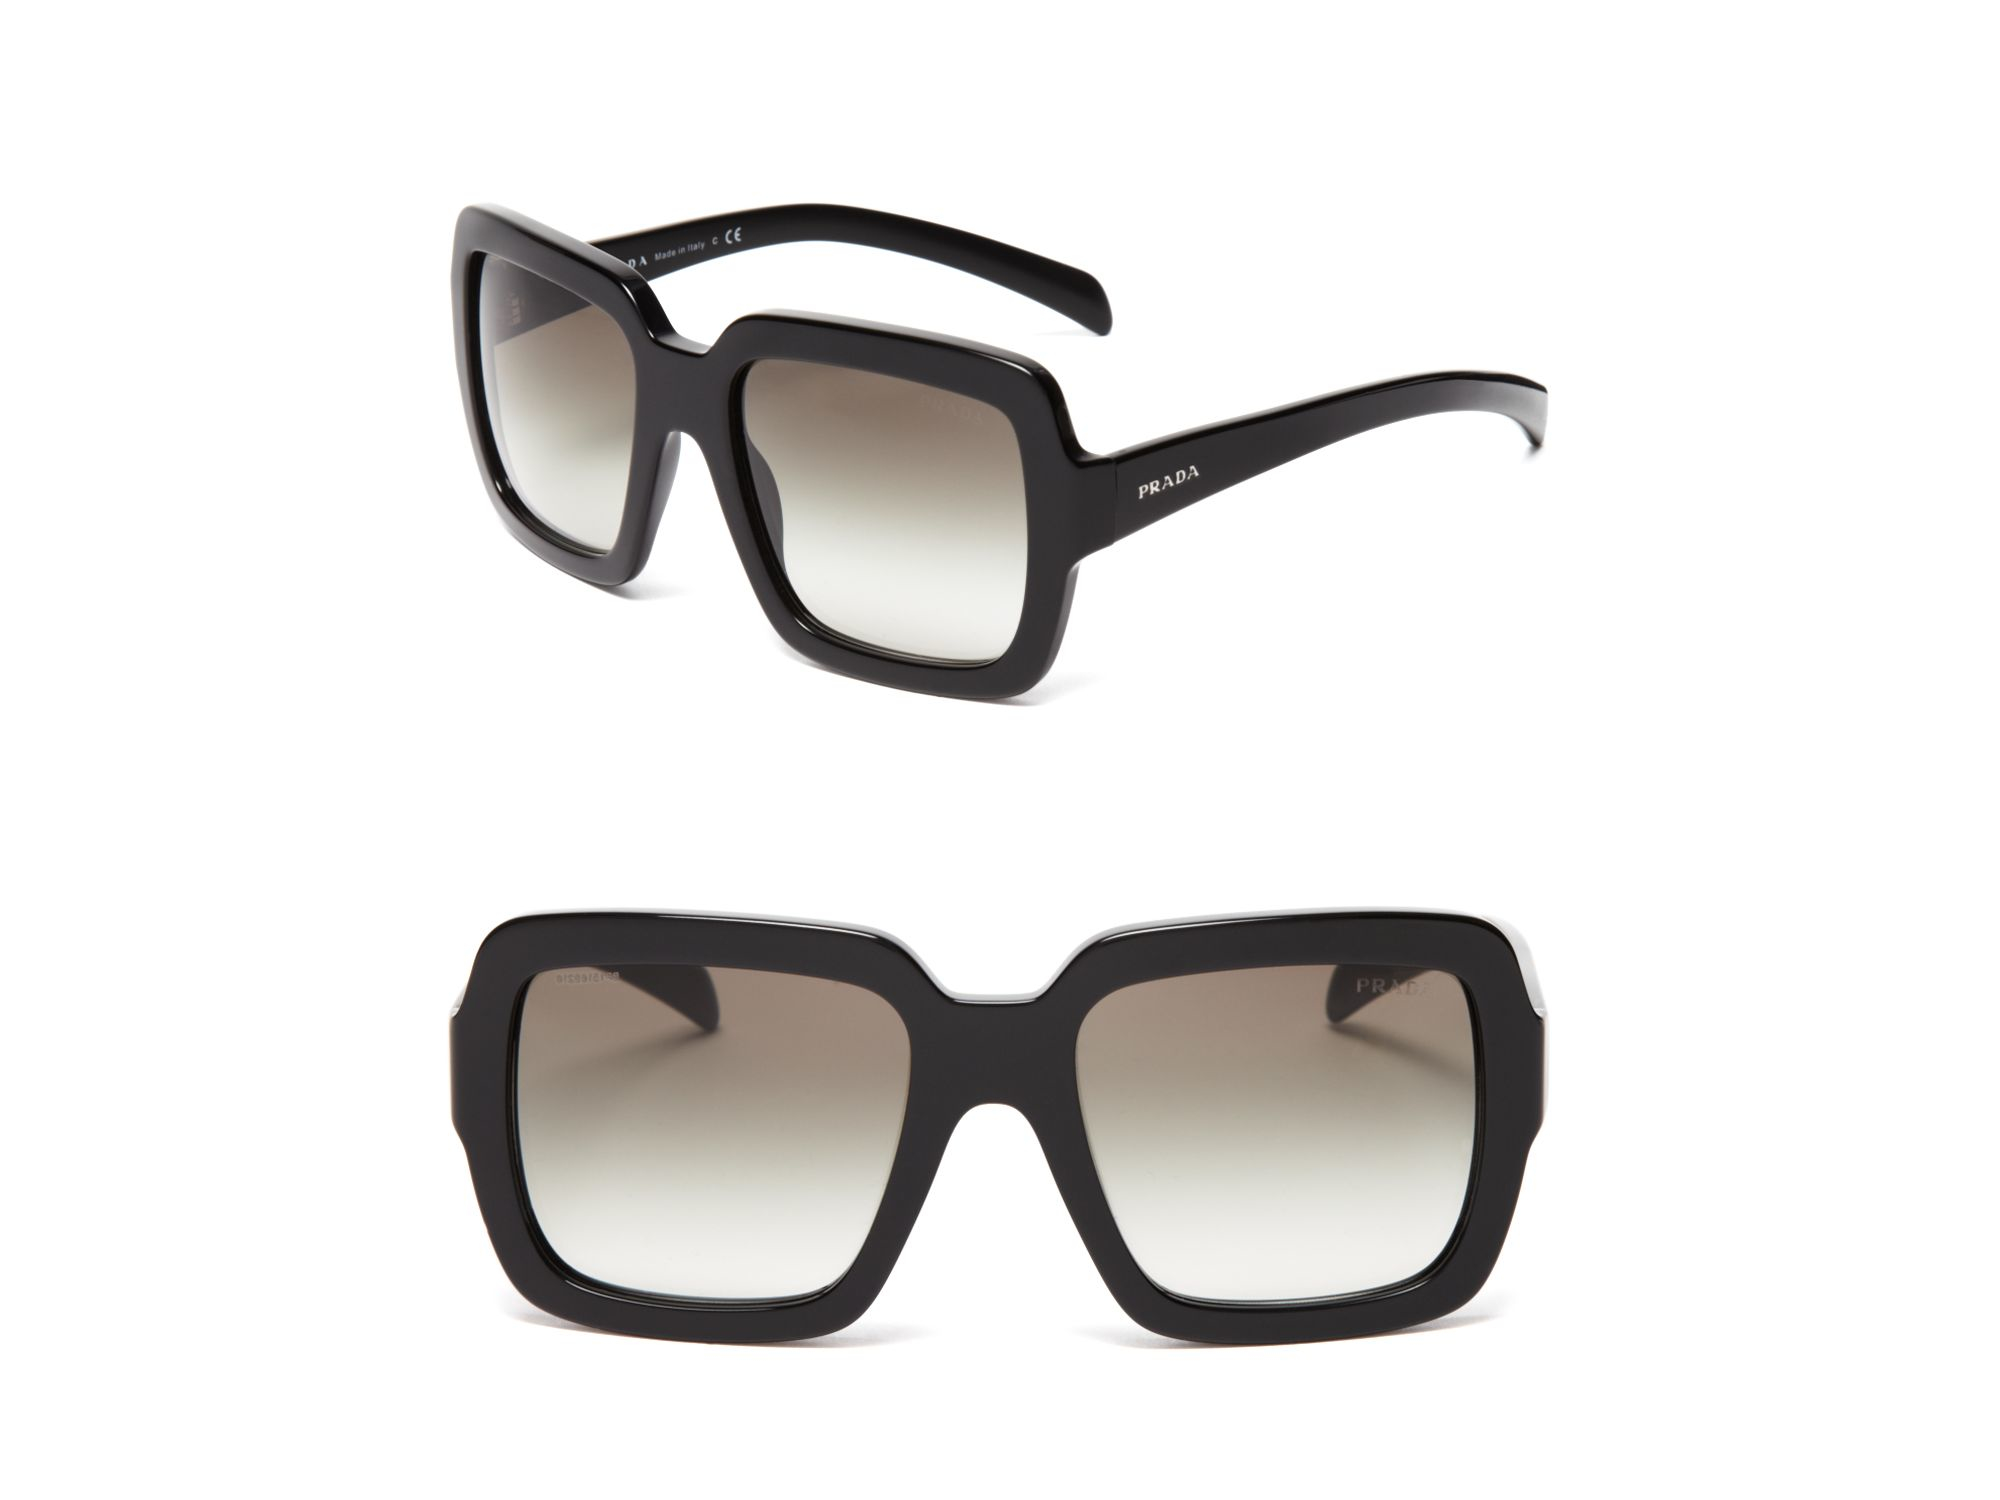 970c555e15 ... top quality lyst prada square oversized sunglasses in black 79c27 9a938